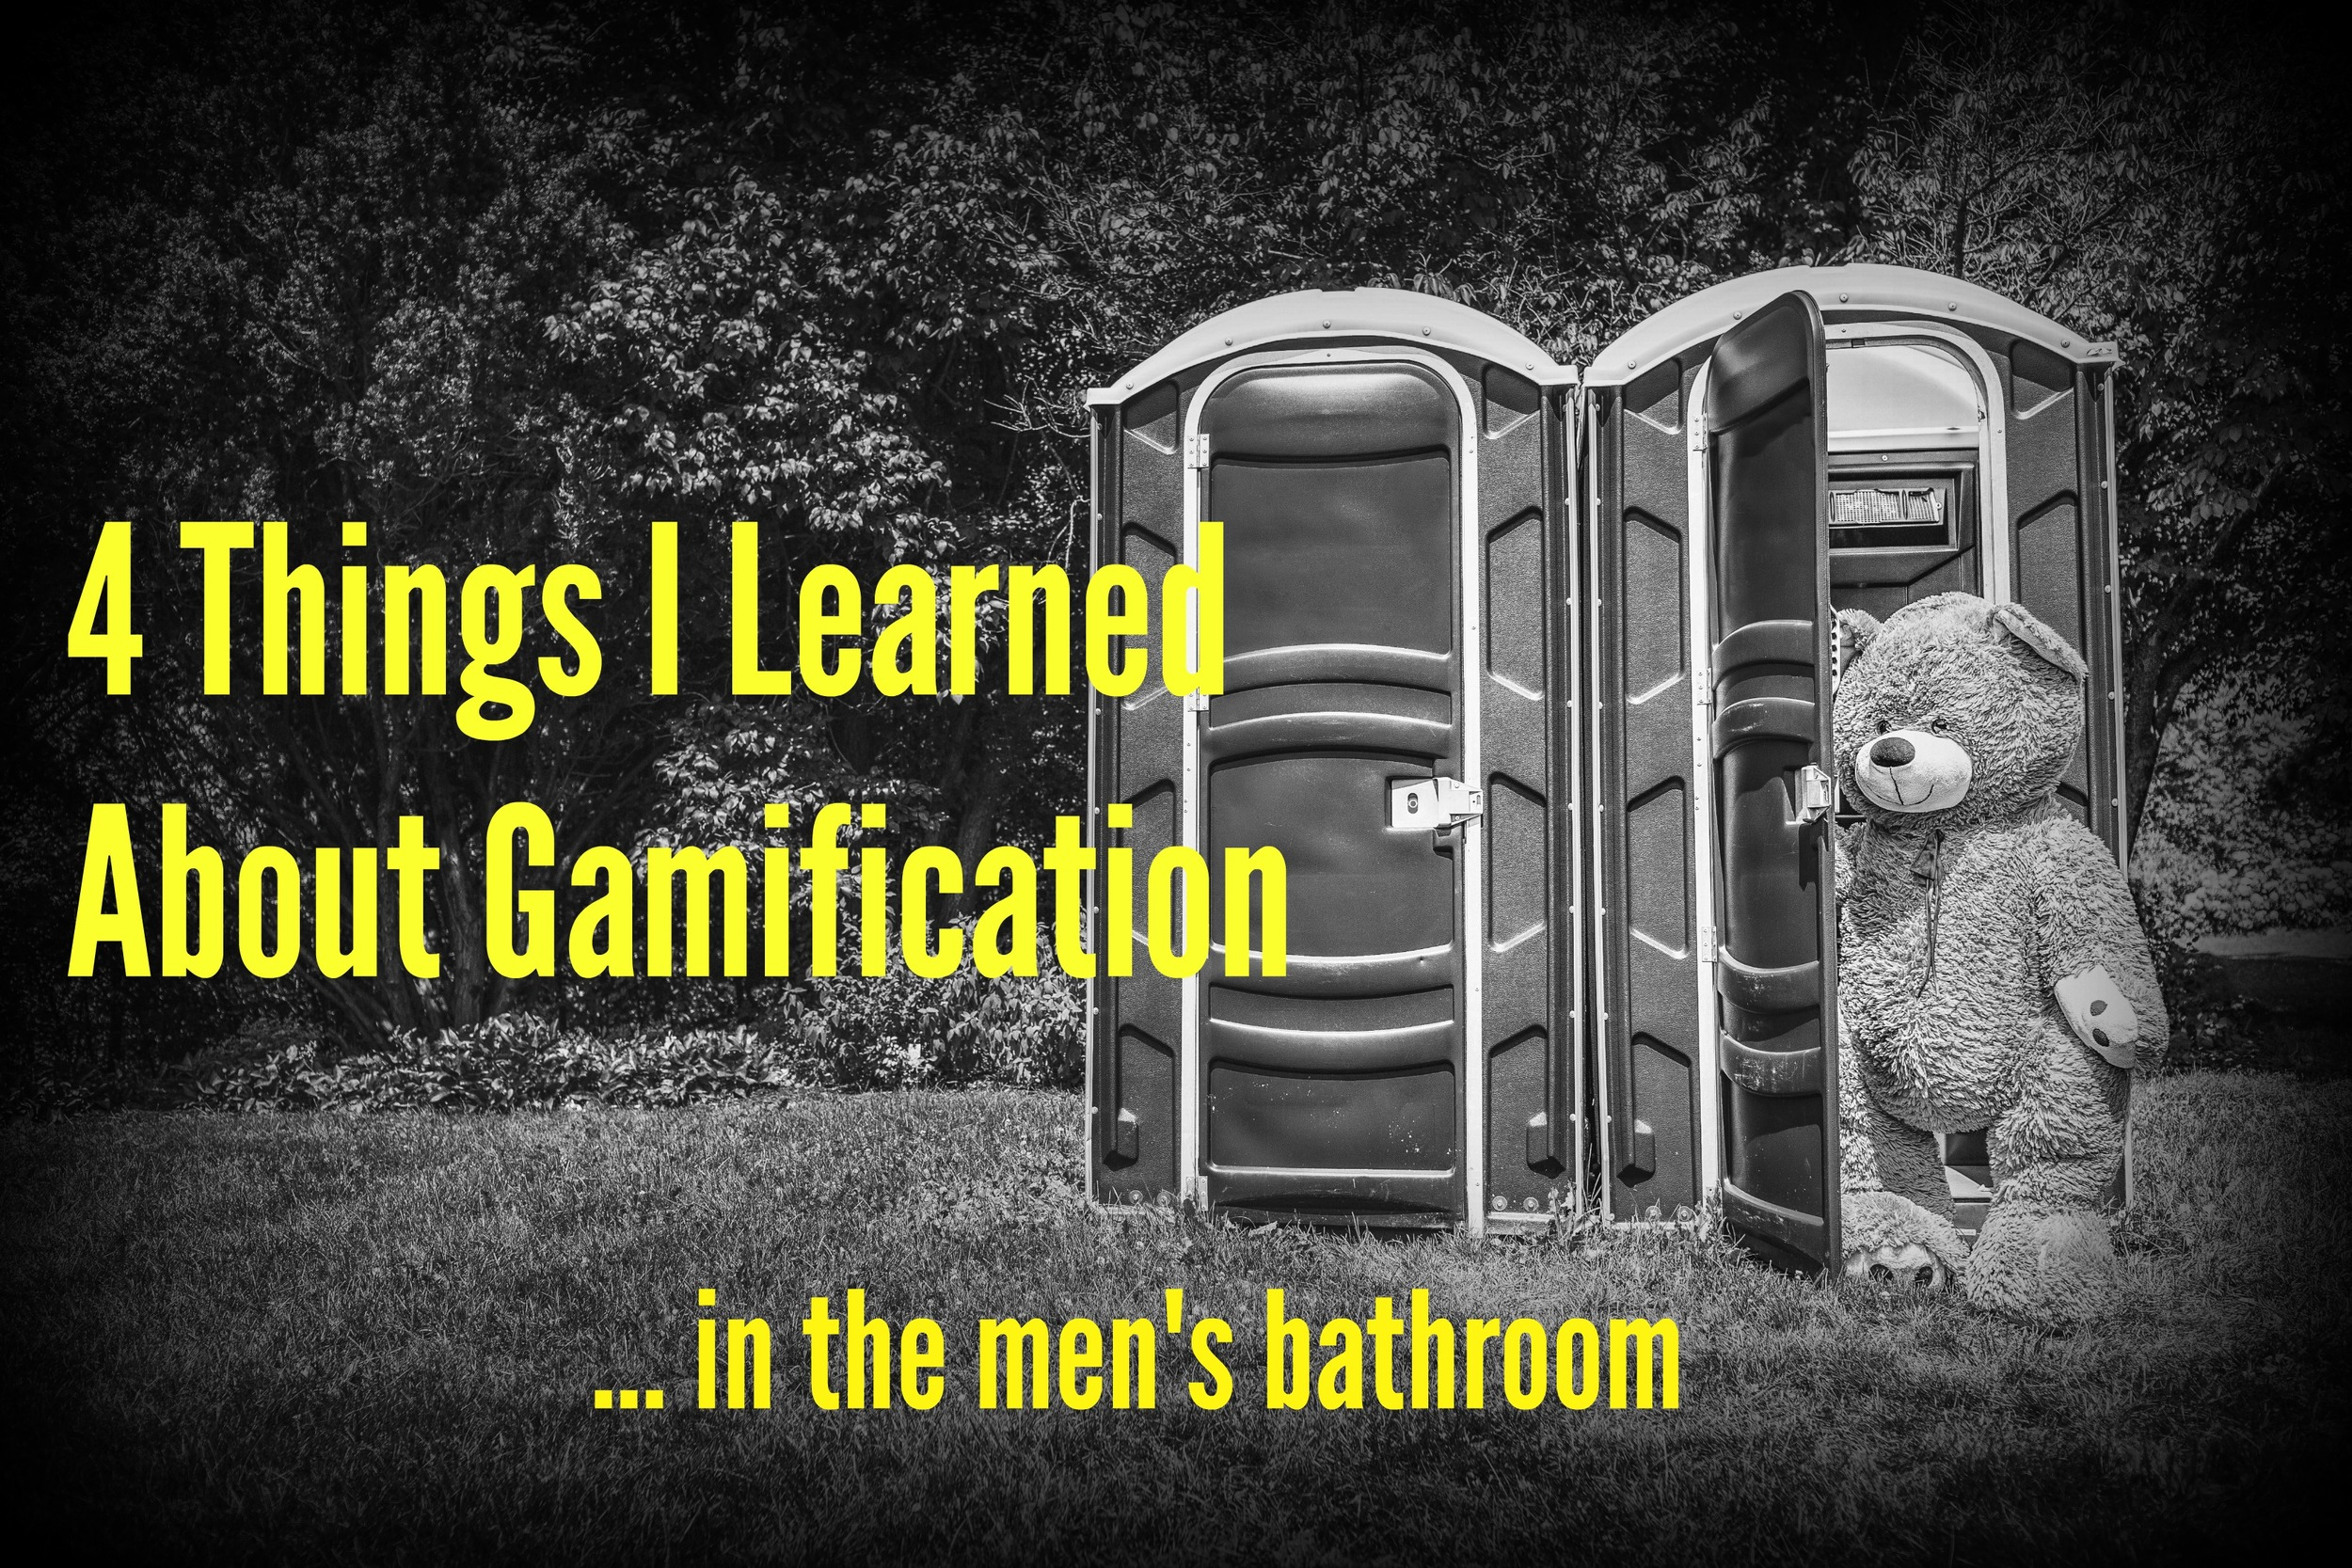 4-Things-I-learned-About-Gamification-in-the-Mens-Bathroom-.jpg